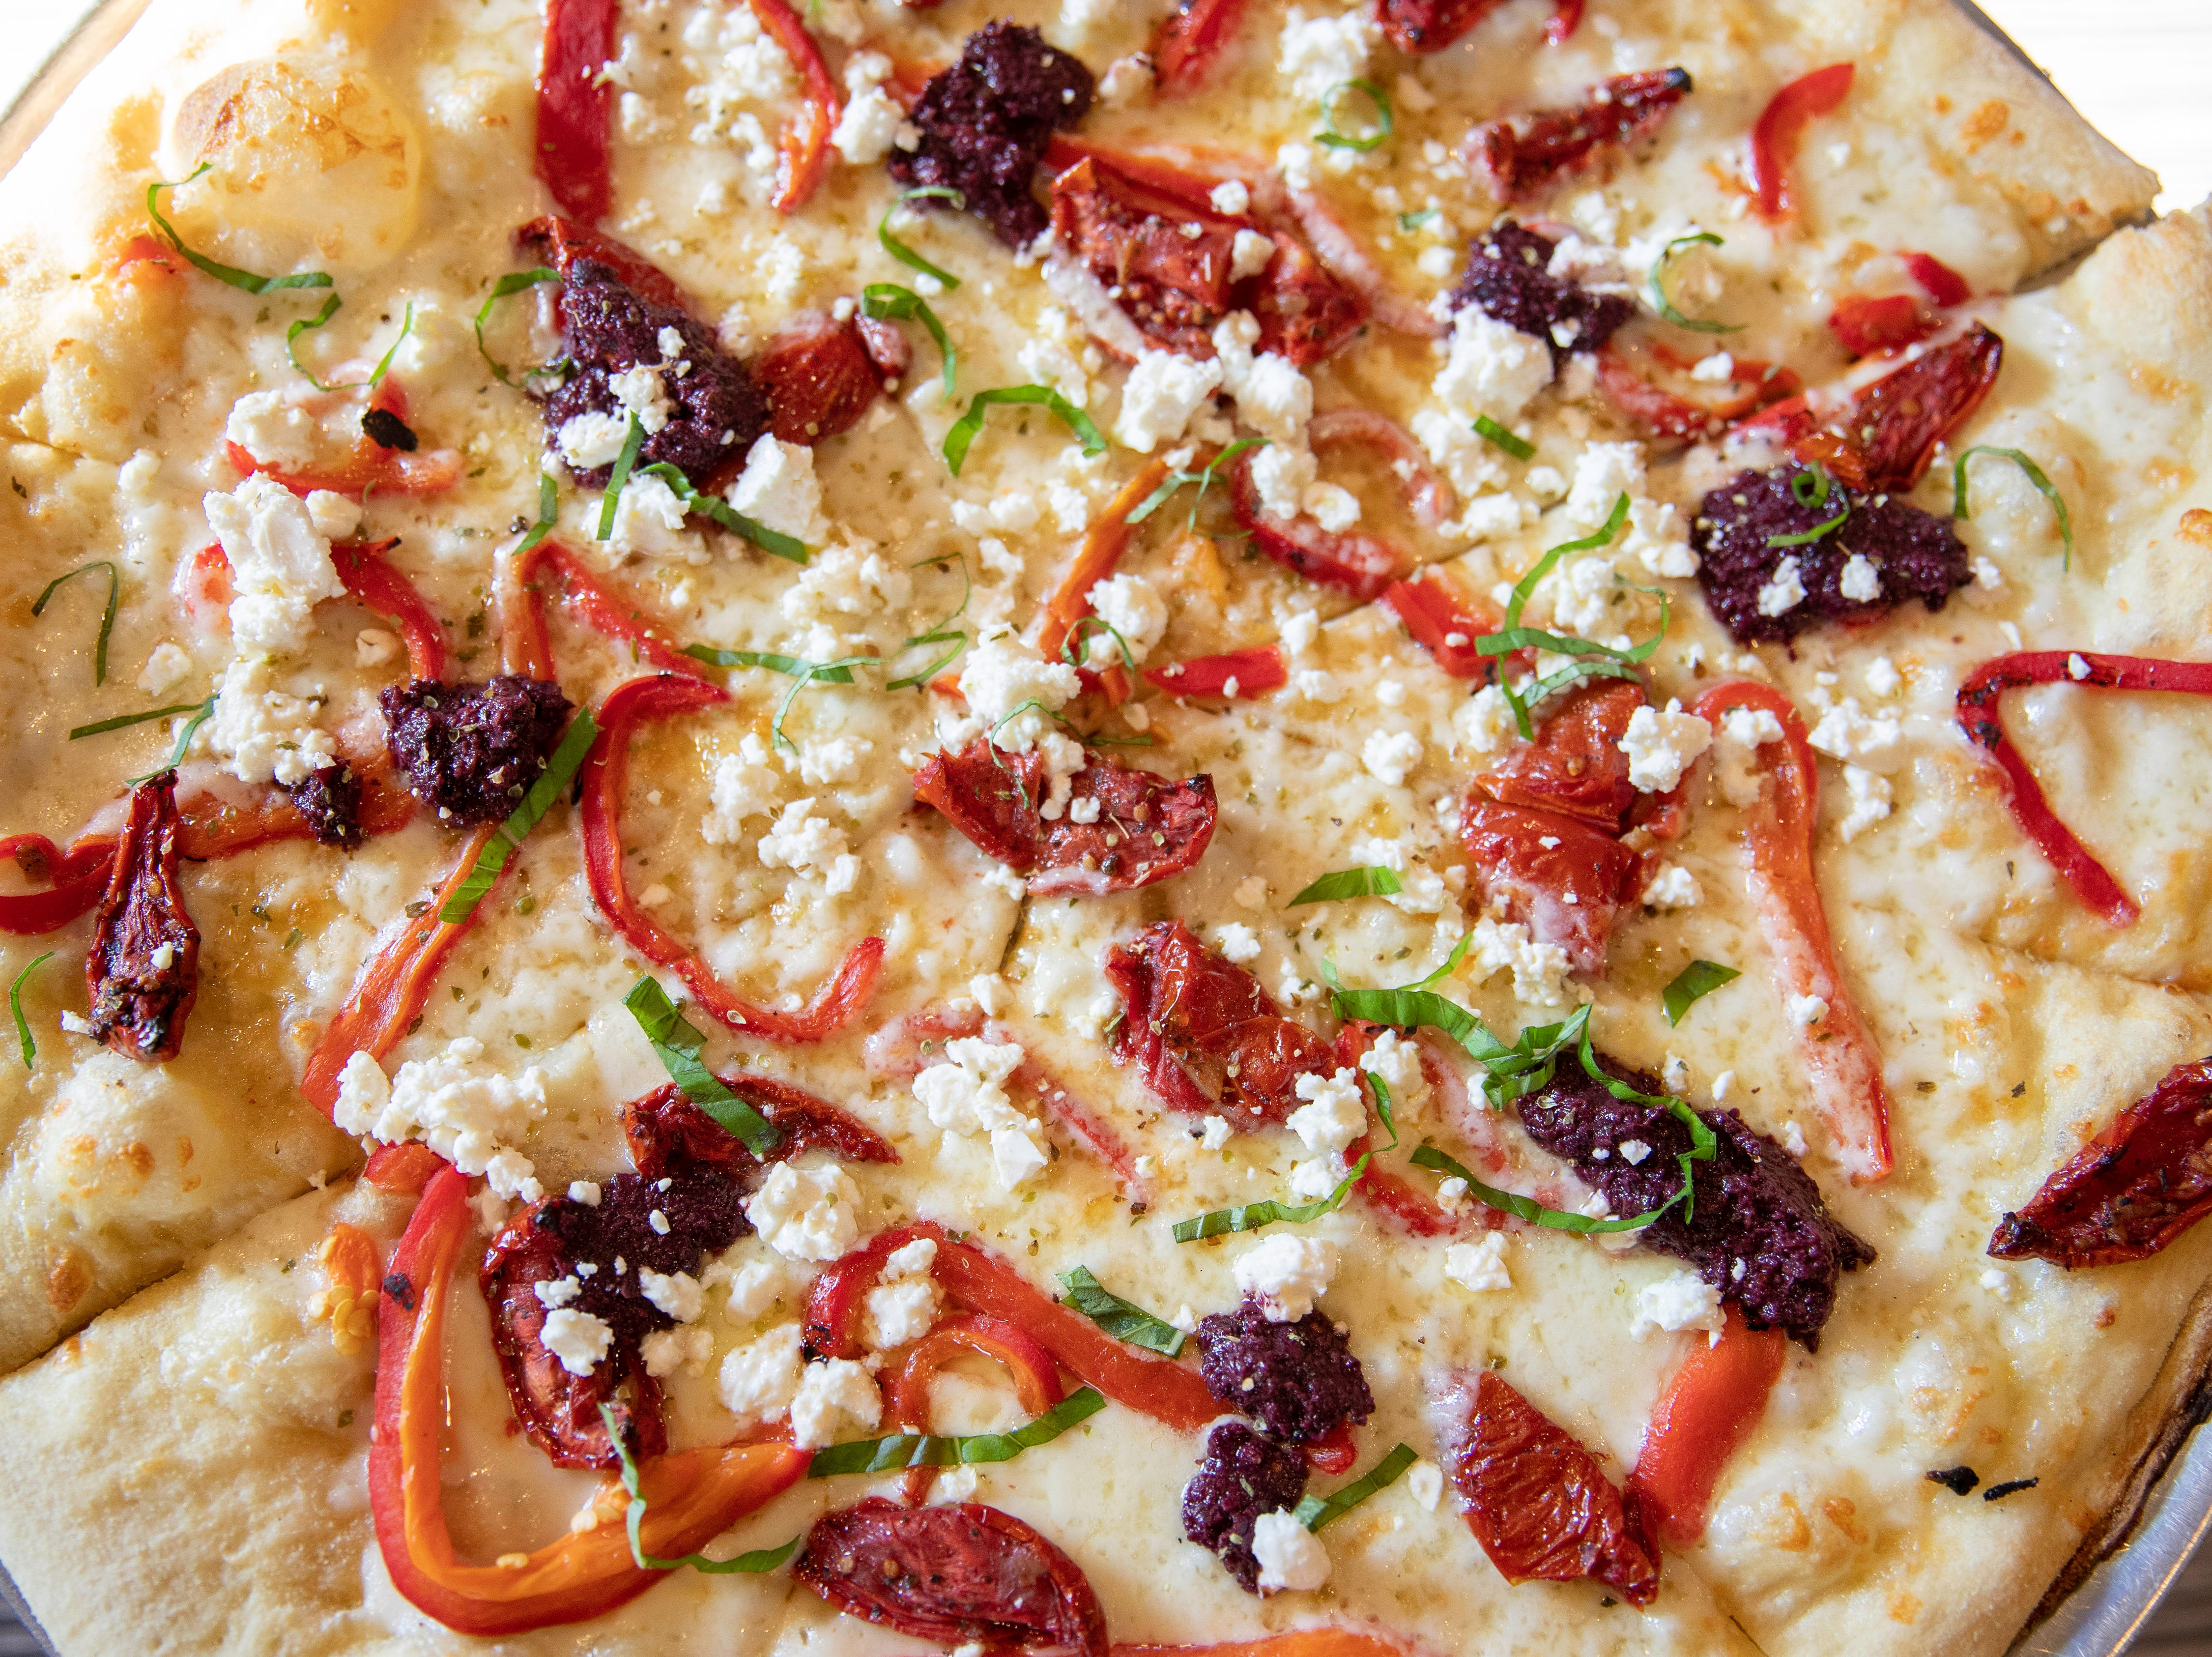 It's All Greek To Me Pizza: roasted garlic butter base, mozzarella & fontina cheese, sun dried tomatoes, roasted red peppers, tapenade, feta cheese, & tzatziki sauce drizzle at Butchertown Pizza Hall, Wednesday, Nov. 7, 2018 in Louisville Ky.